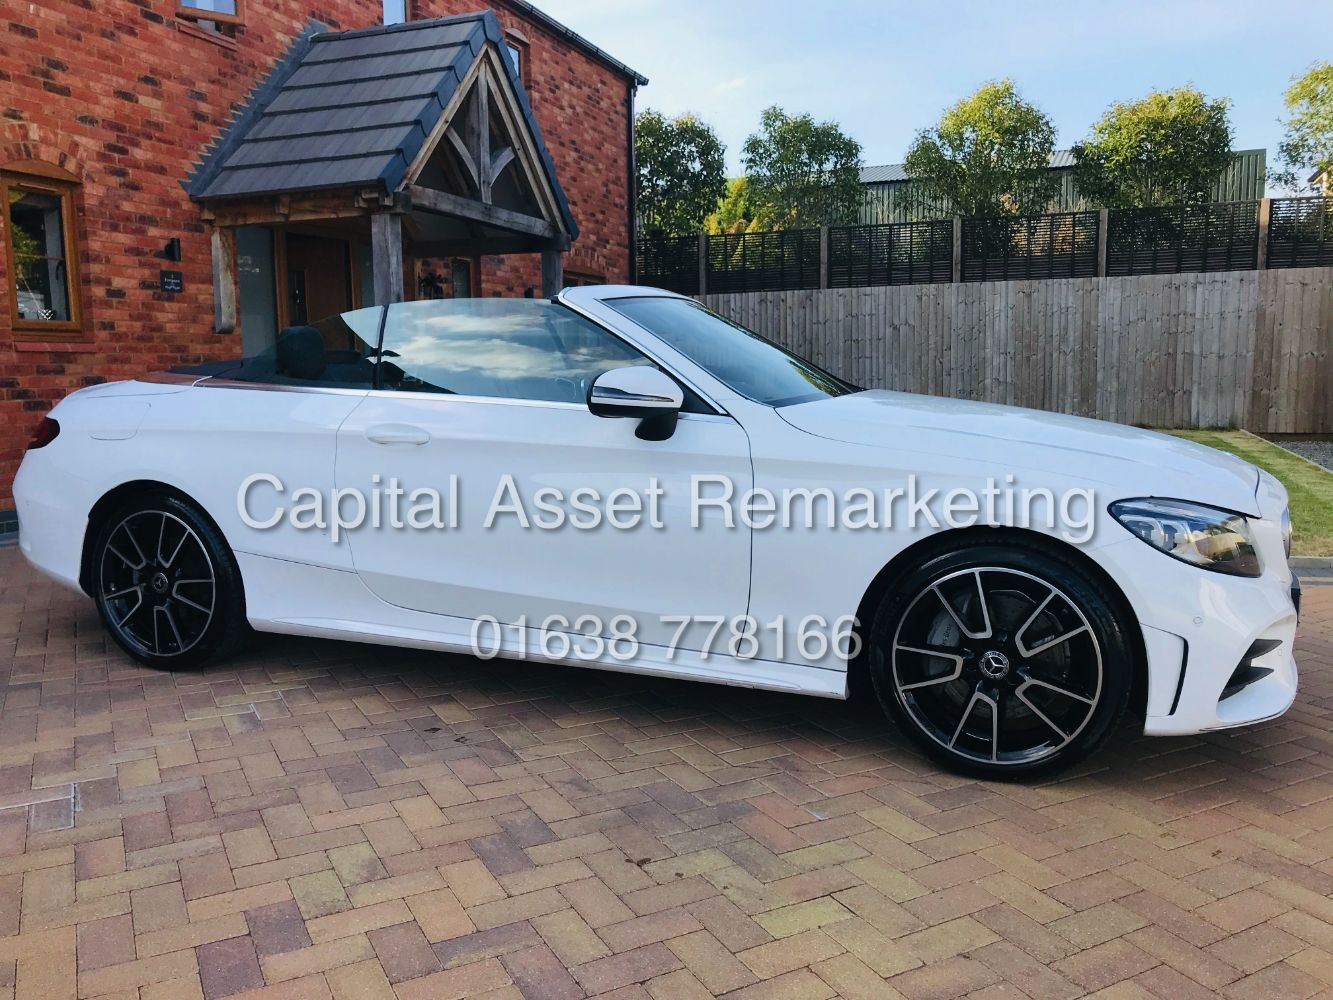 2020 Mercedes-Benz C300d *AMG Premium - Cabriolet* - 2019 Audi A4 S-Tronic *Black Edition* - 2019 Rolex GMT Master II *Rootbeer* + Many More...